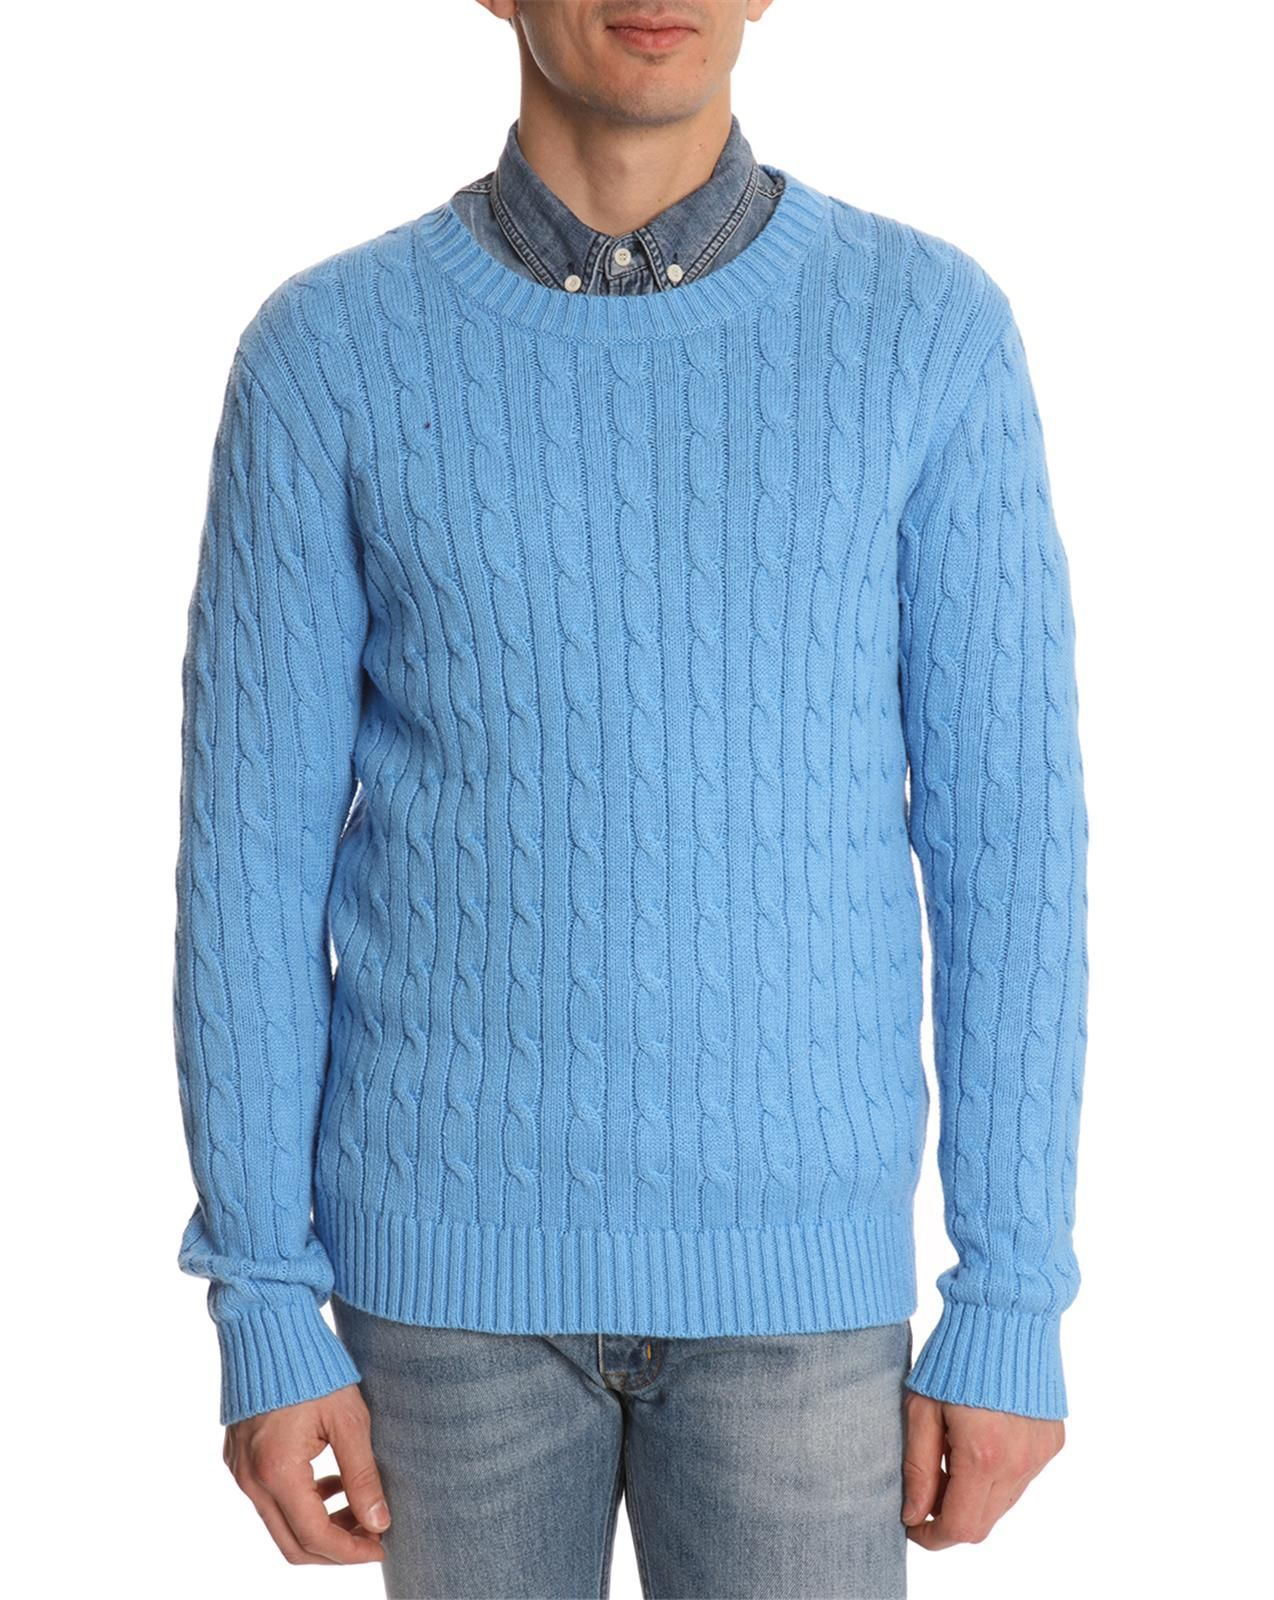 Find Blue men's cardigans at ShopStyle. Shop the latest collection of Blue men's cardigans from the most popular stores - all in one place.